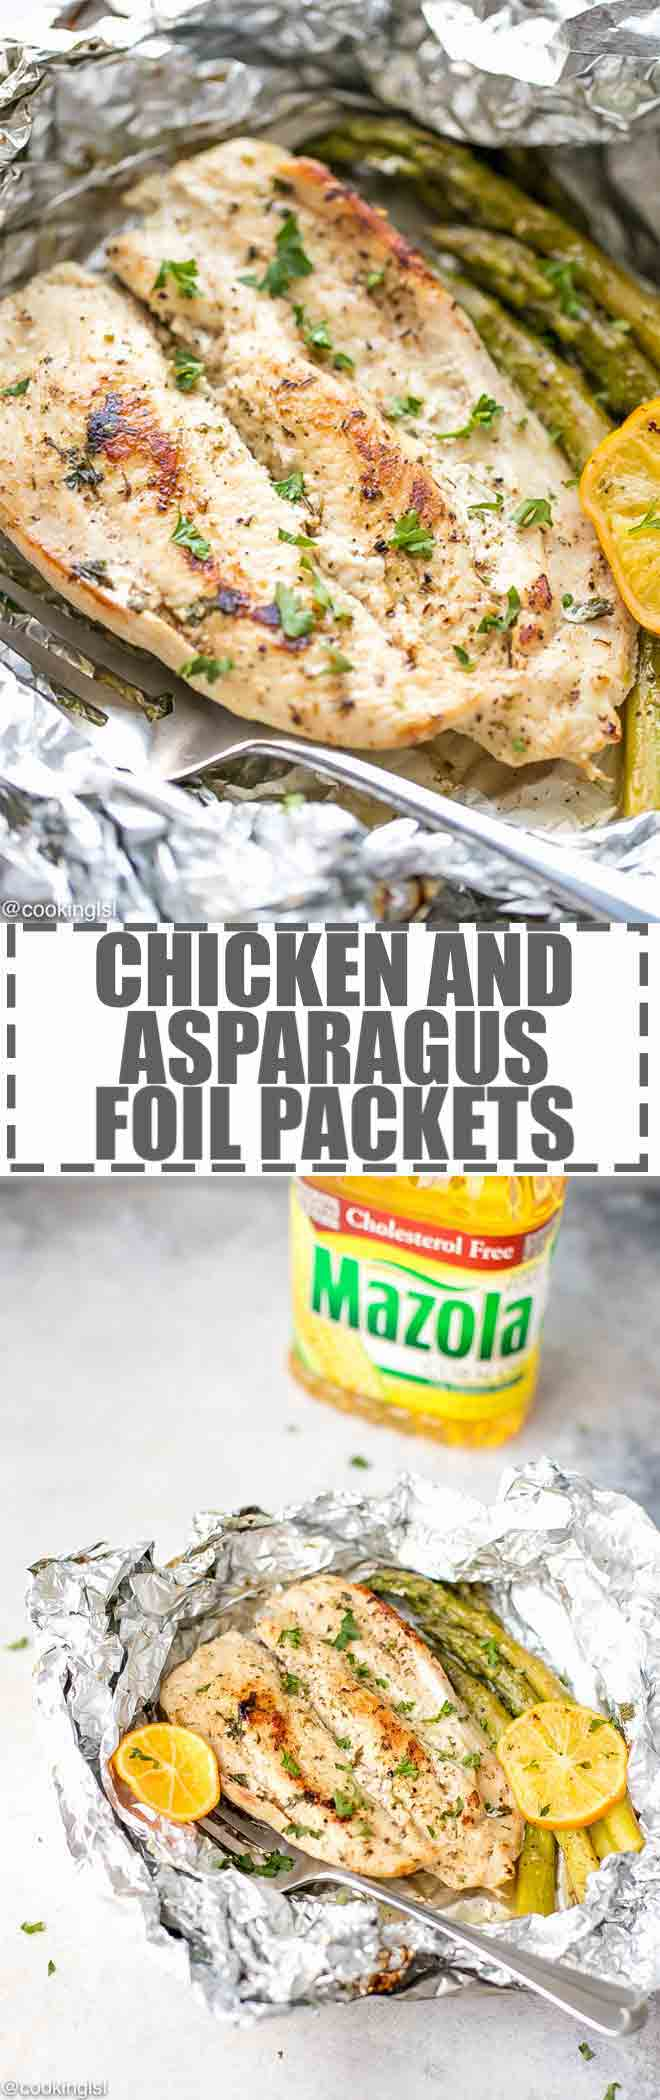 Easy Chicken And Asparagus Foil Packets Recipe - quick and easy to prepare, light and delicious, nutritious meal. Minimal prep work, perfect for busy families. #ad #chickeninfoil #foilpackets #asparagus #chickenrecipes